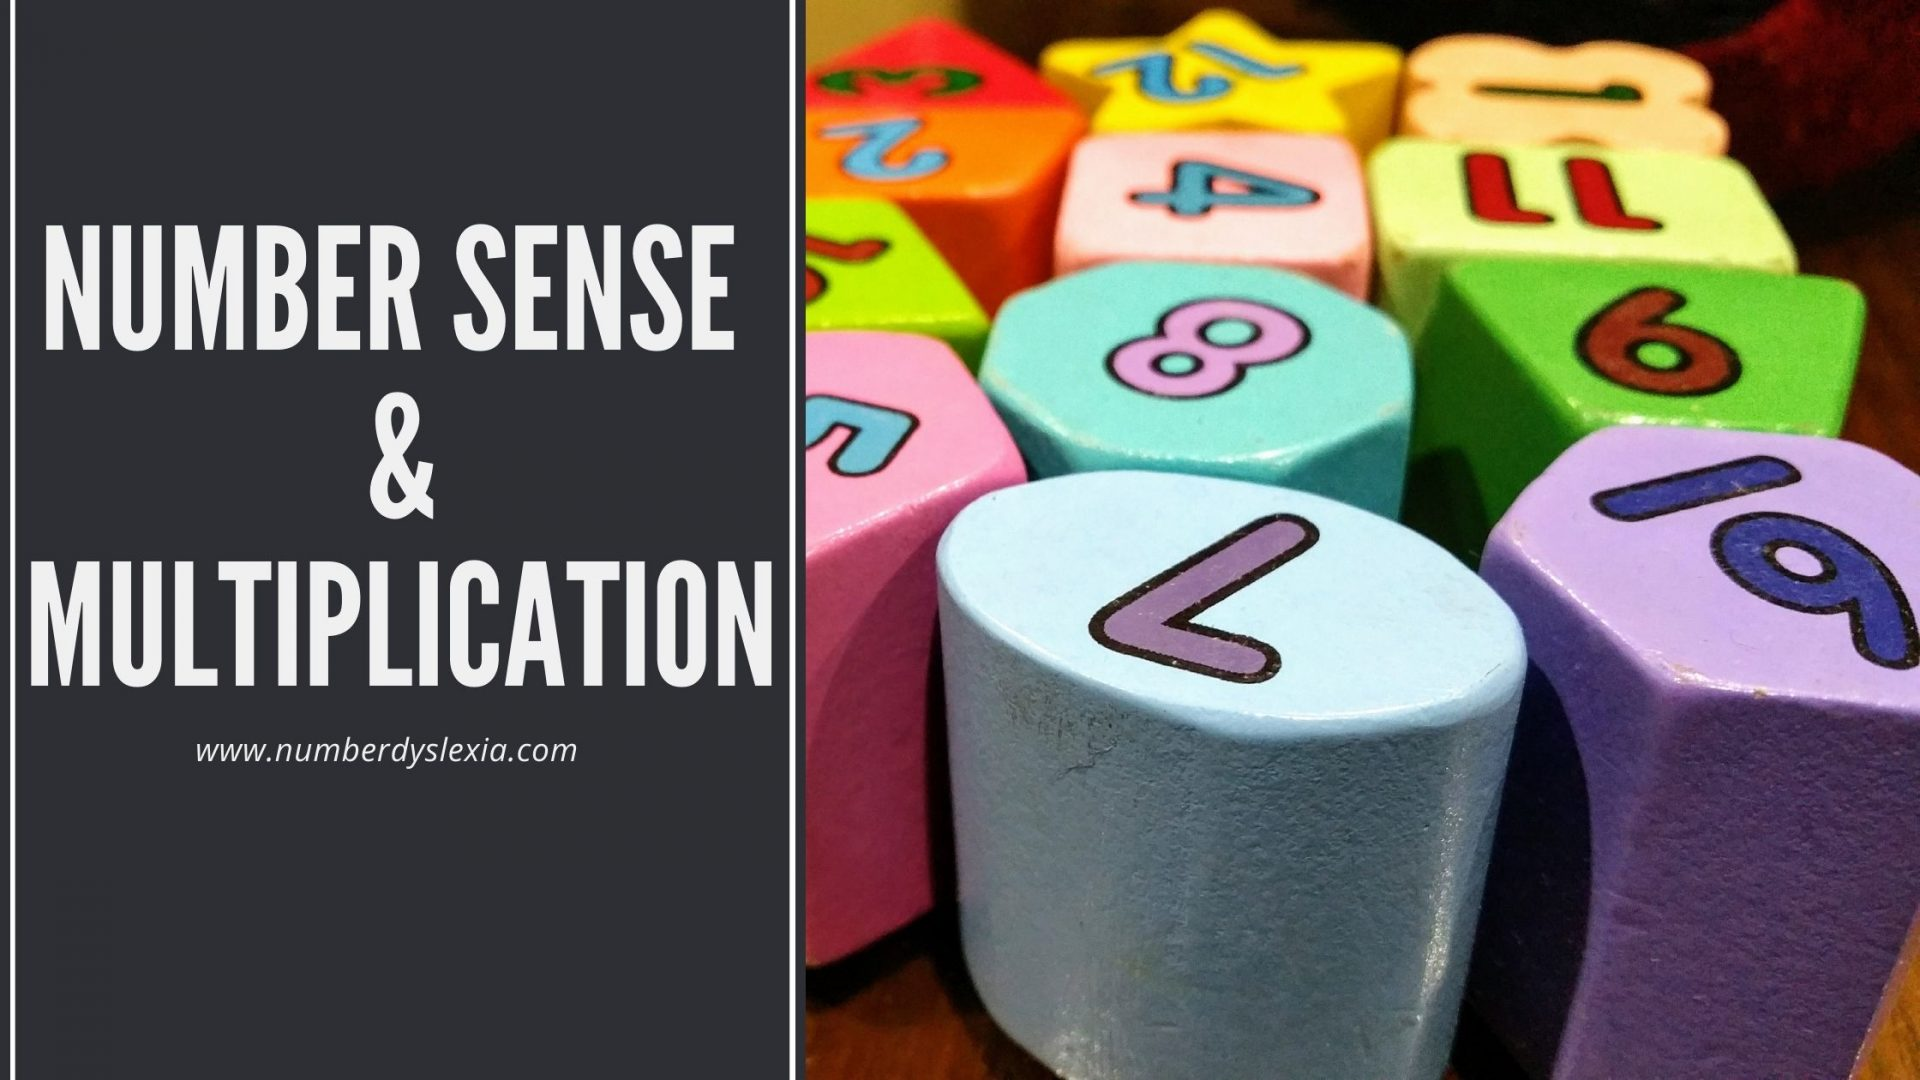 Number sense strategies and activities for learning multiplication